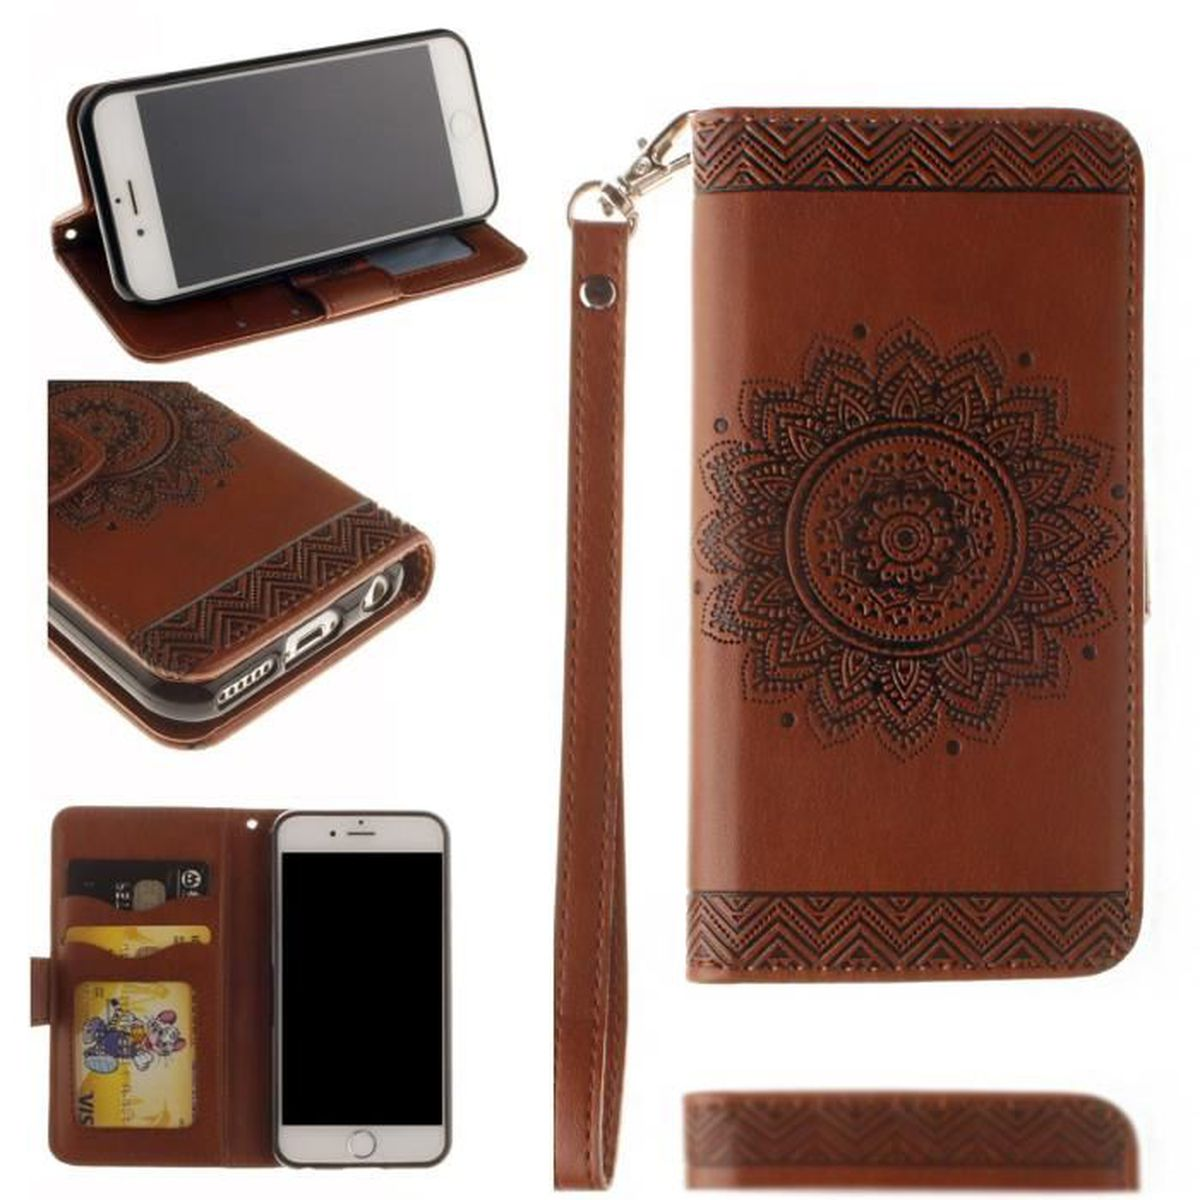 Tui housse luxe coque iphone 6 6s plus 5 5 portefeuille for Etui housse iphone 5